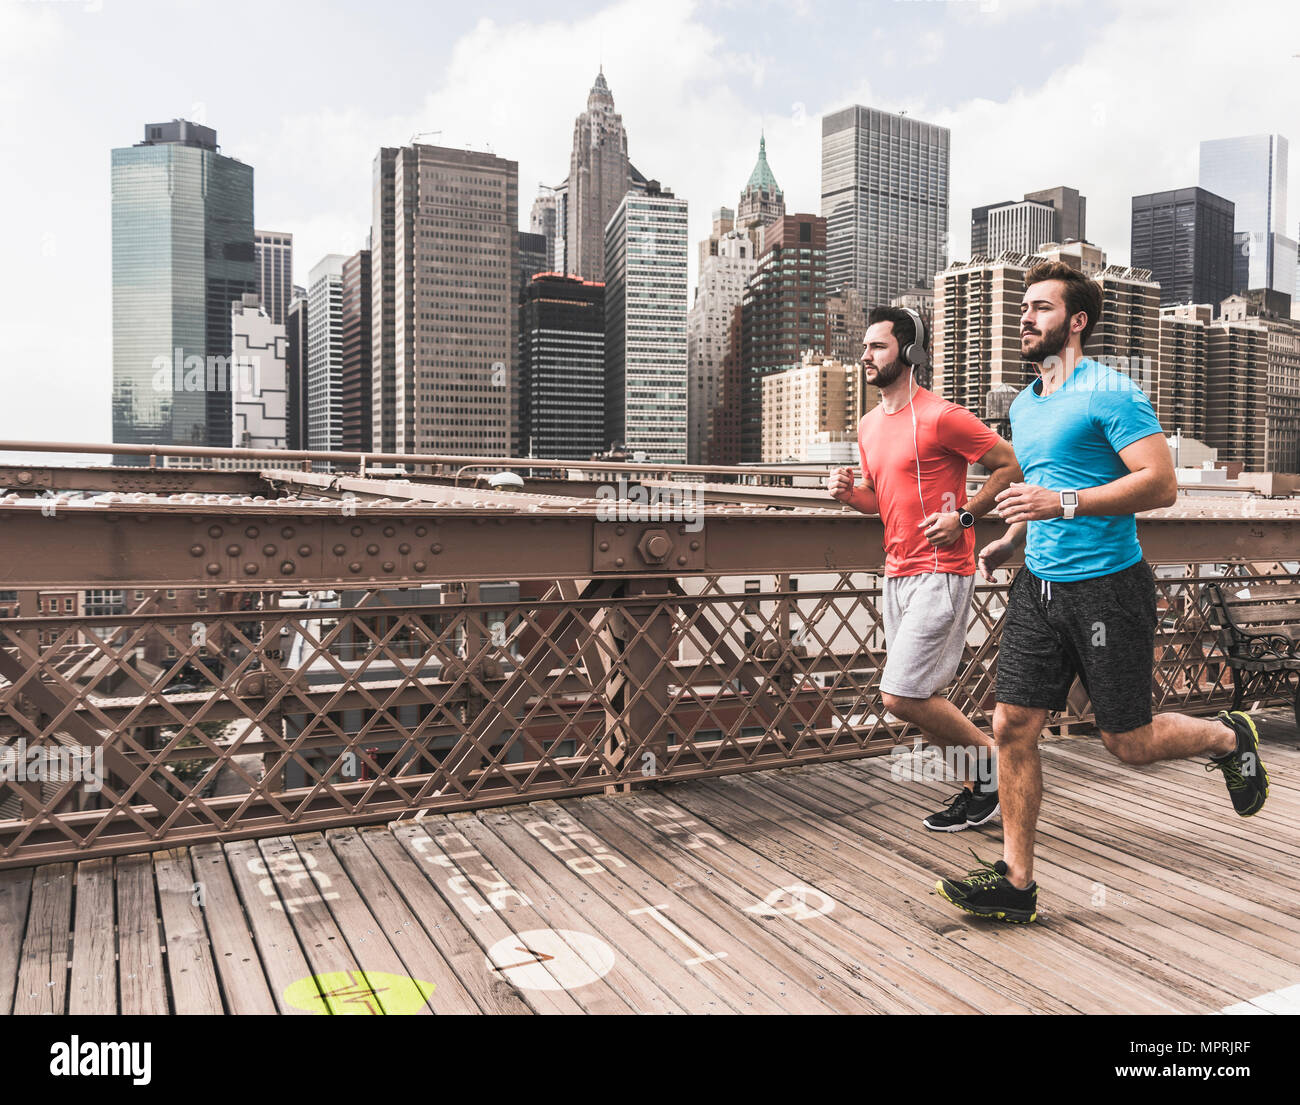 USA, New York City, two men running on Brooklyn Brige with data on the ground - Stock Image